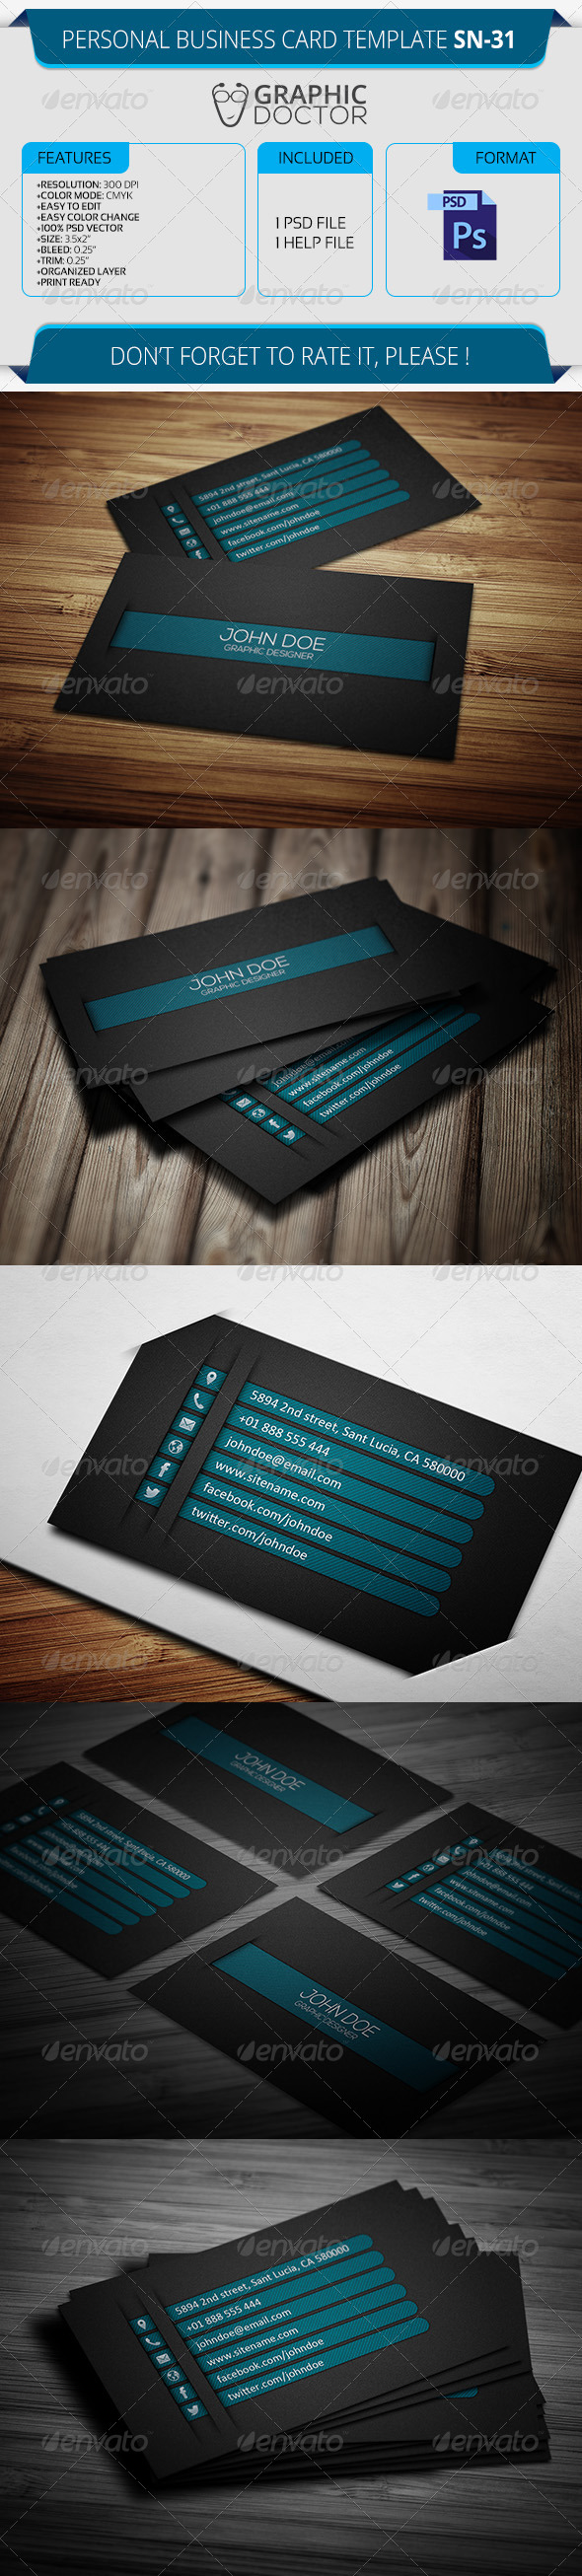 Personal Business Card Template SN-31 - Creative Business Cards